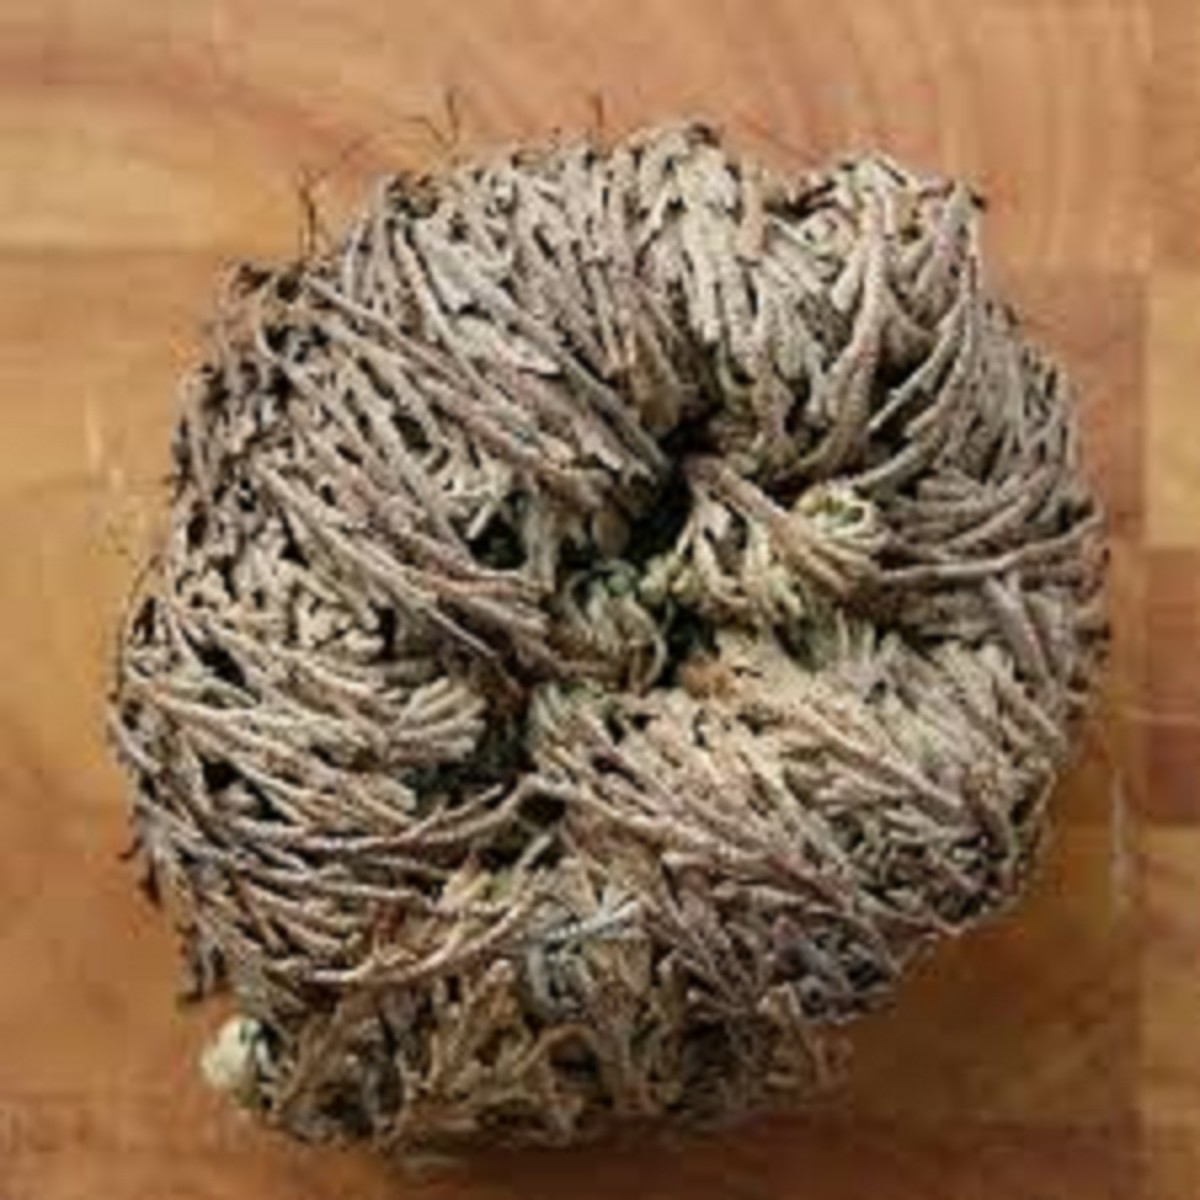 lessons-from-the-rose-of-jericho-or-resurrection-plant